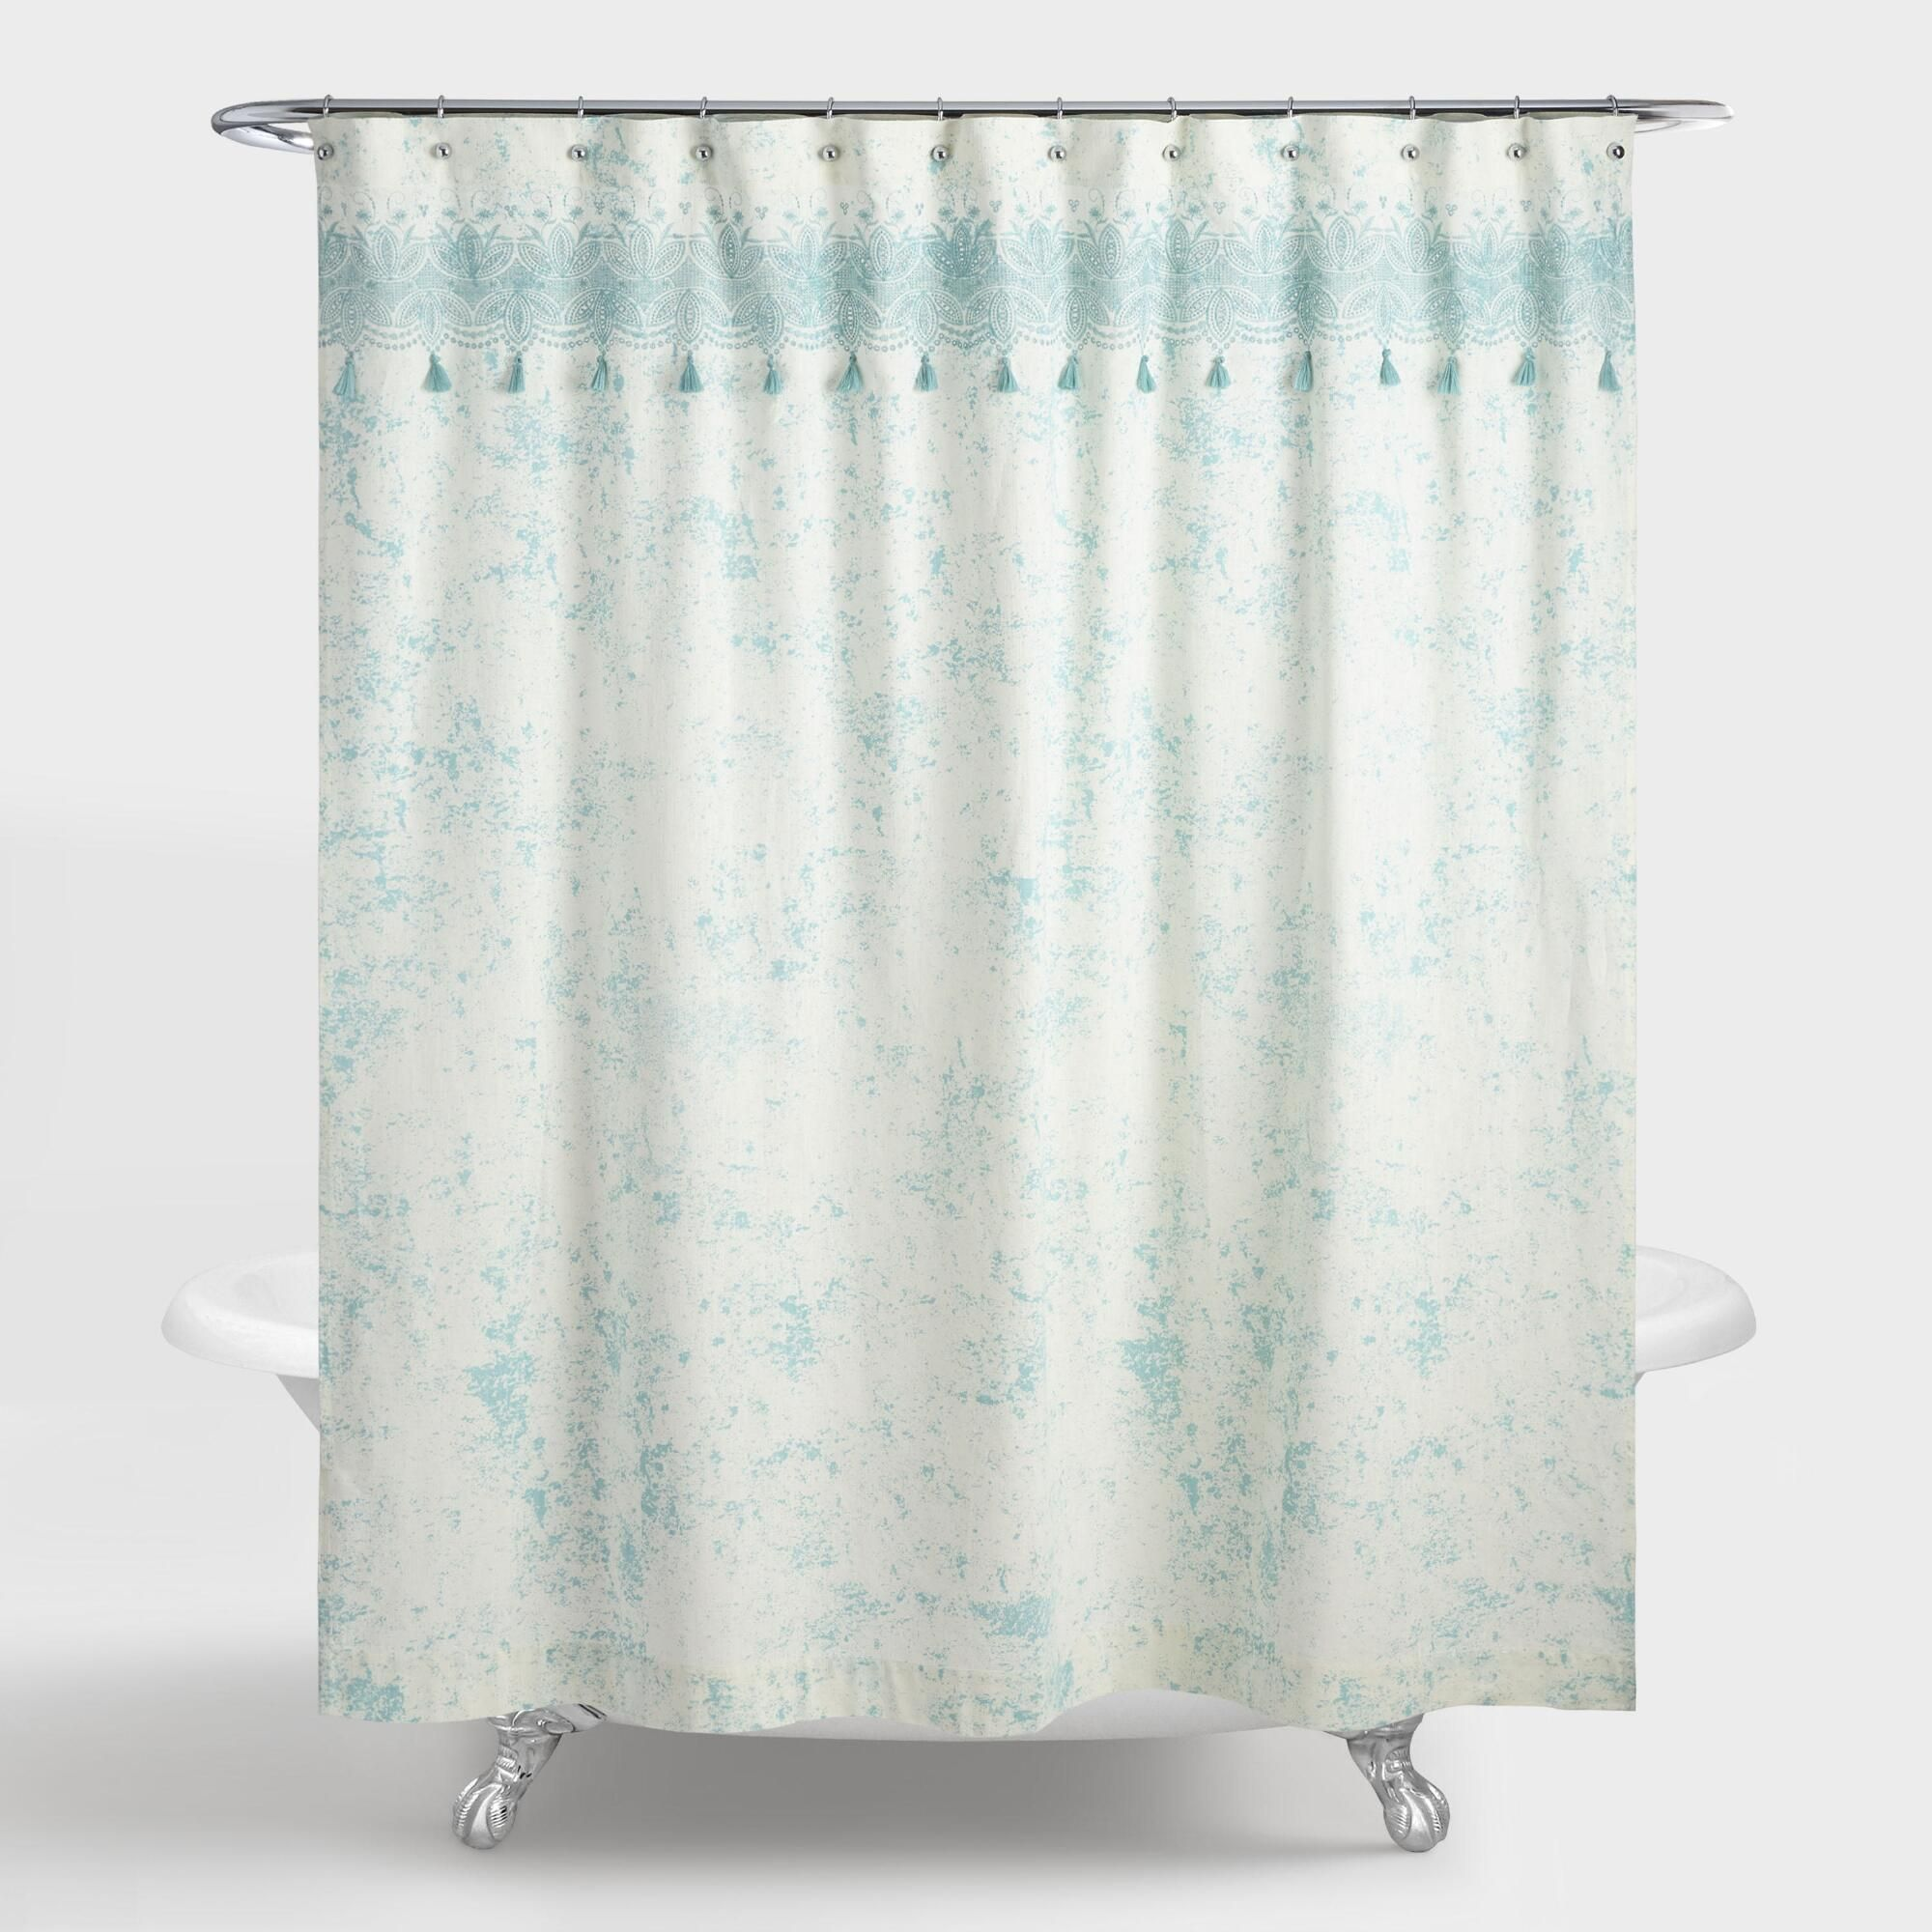 Aqua And Ivory Embroidered Eyelet Celia Shower Curtain Shower